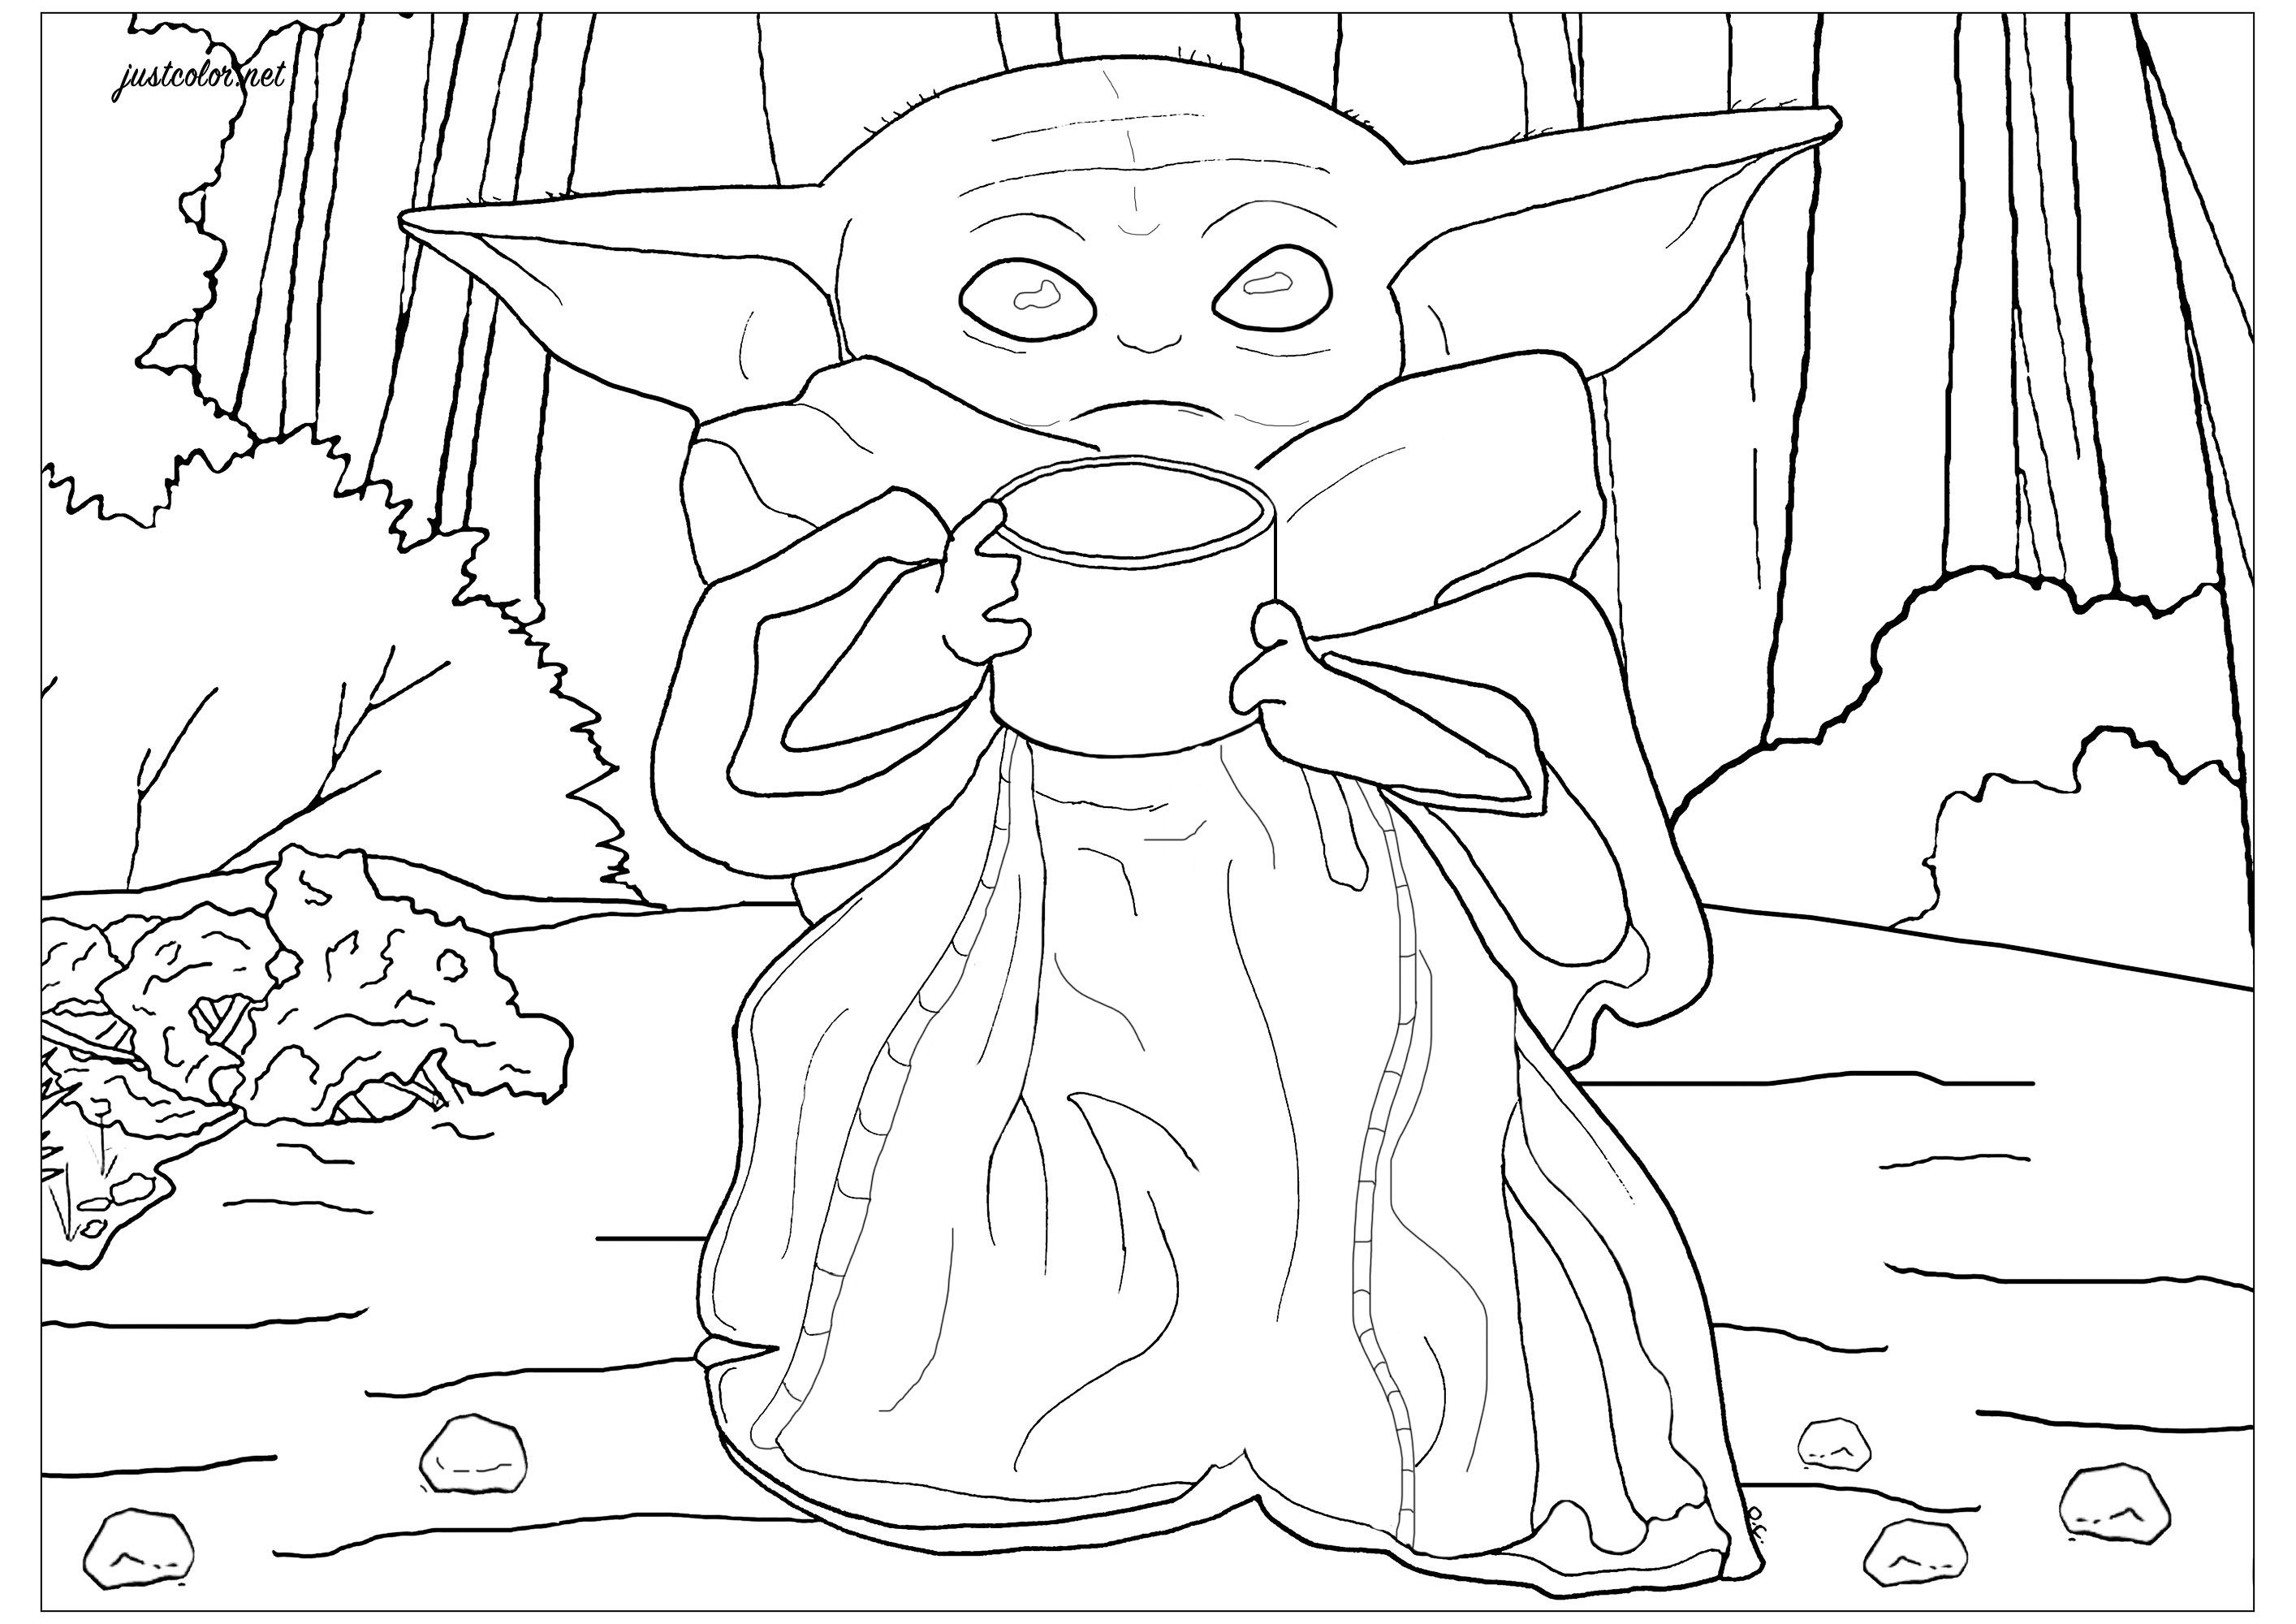 Baby Yoda The Child Movies Coloring Pages For Adults Just